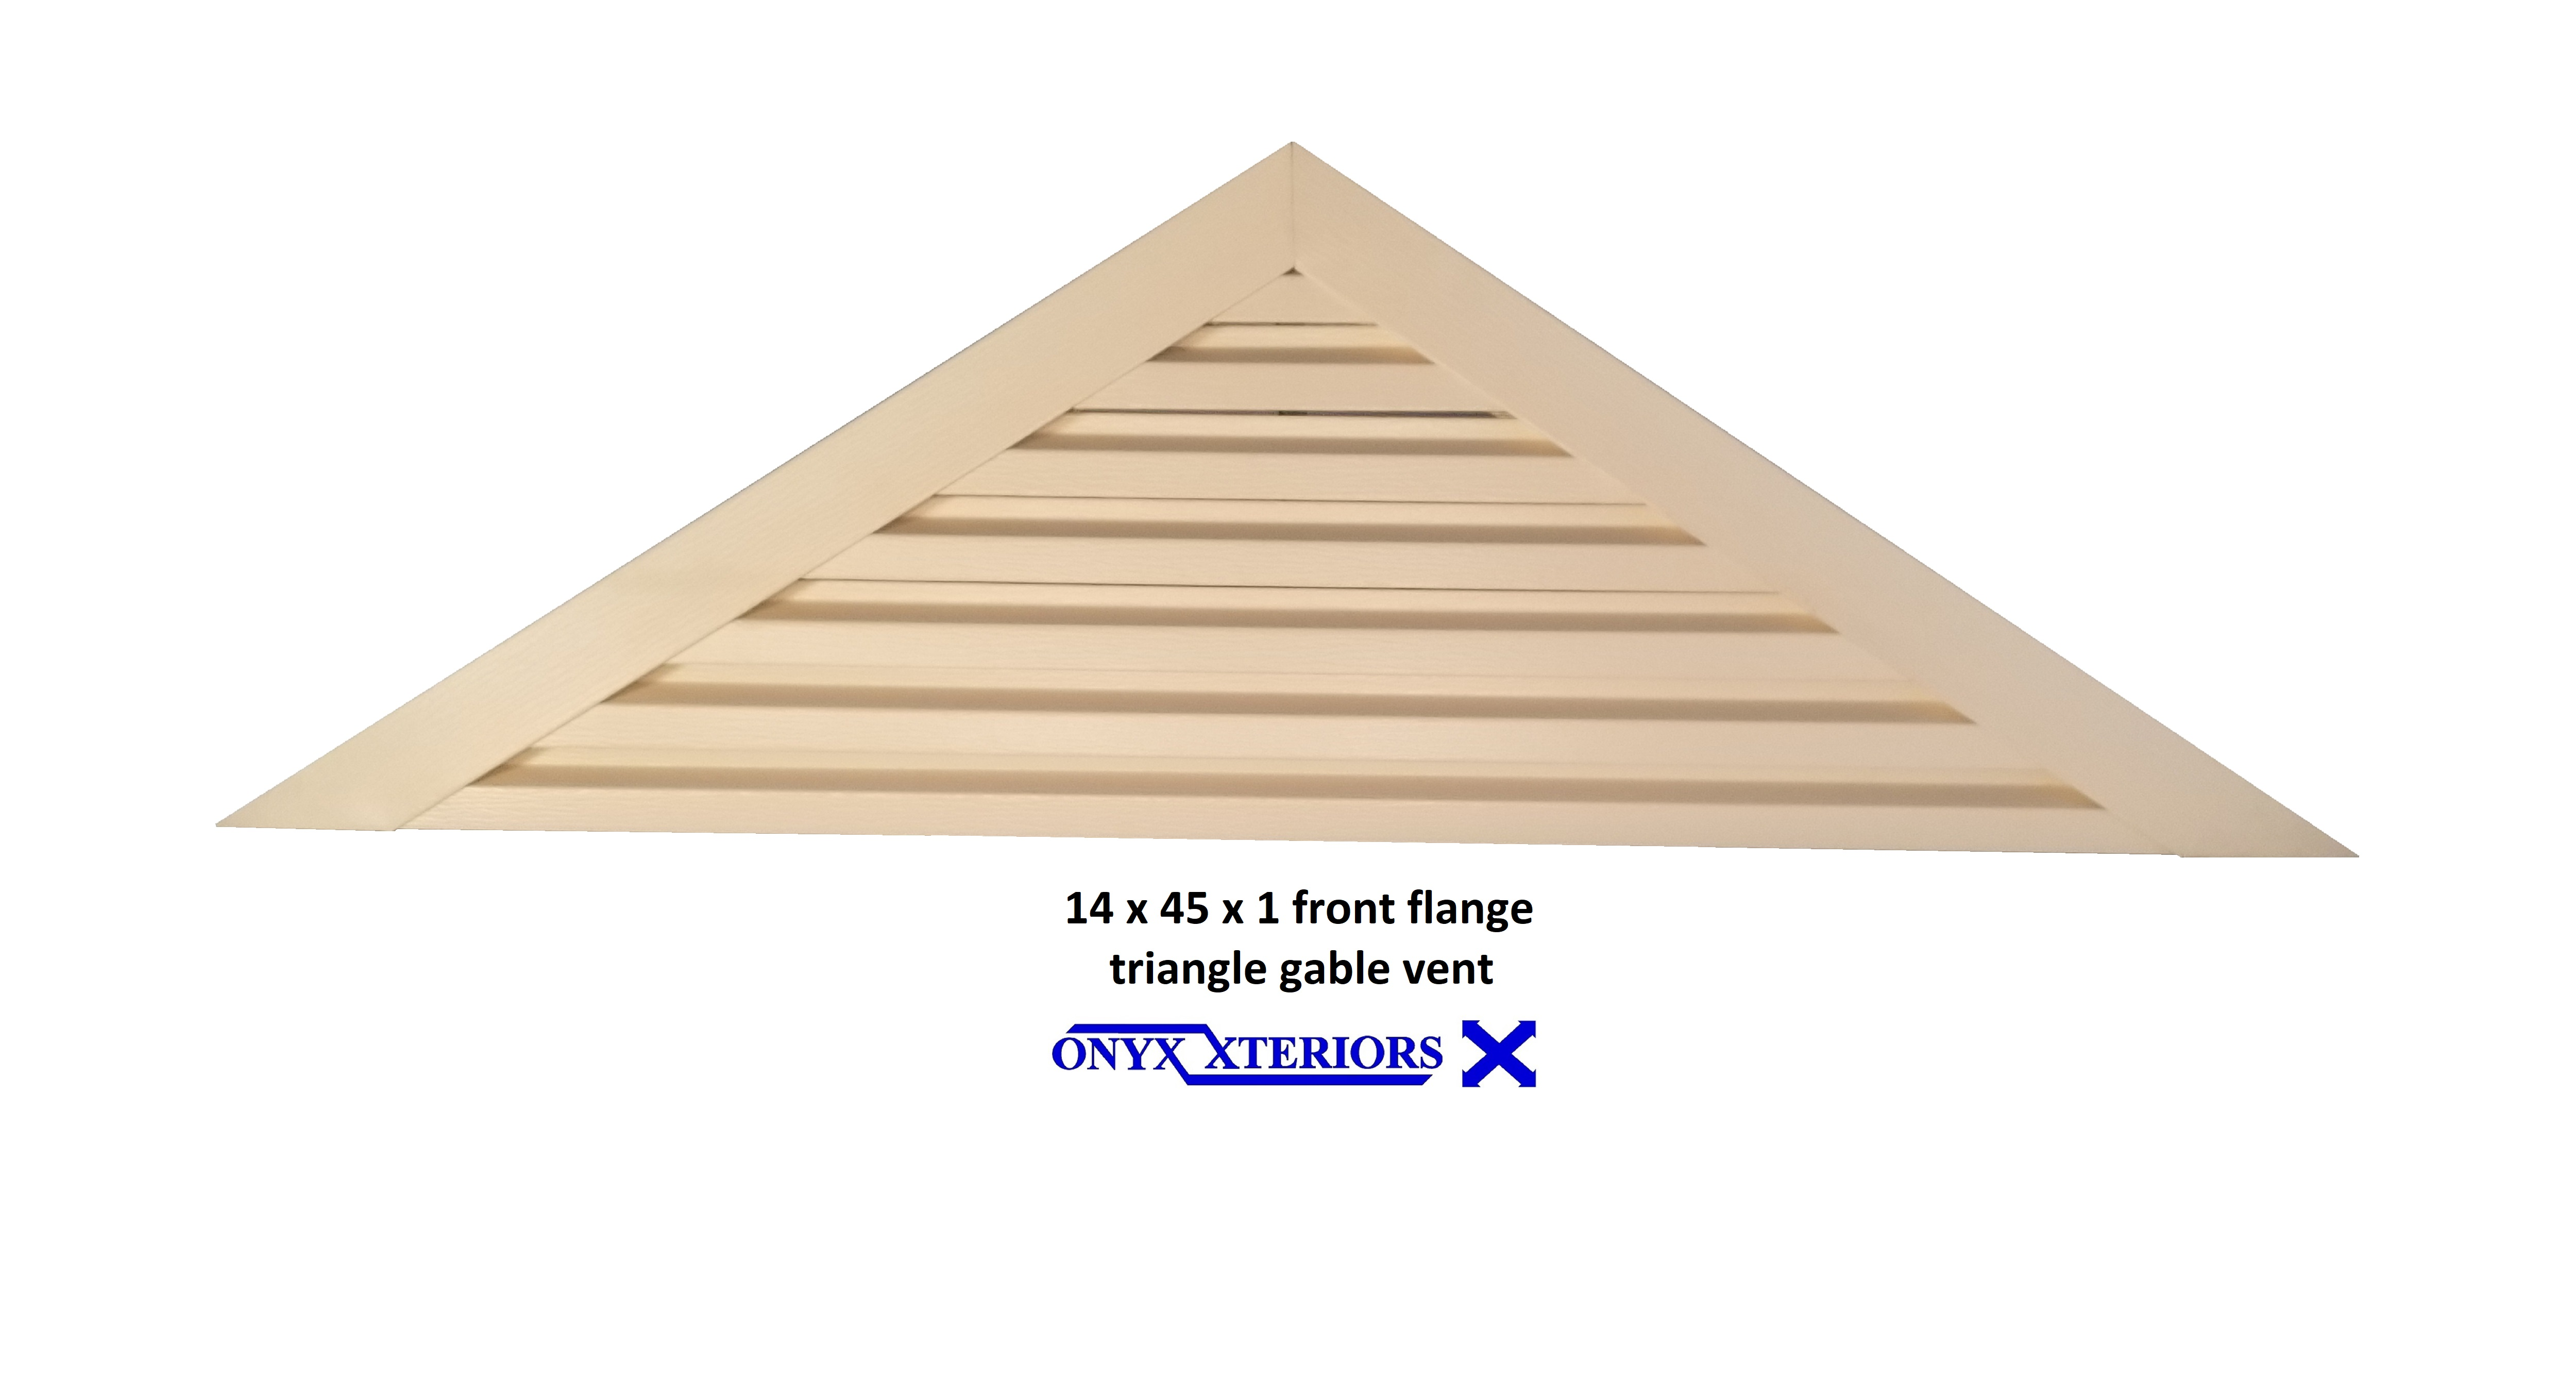 1 Inch Deep Triangle Gable Vent By Measure Front Flange